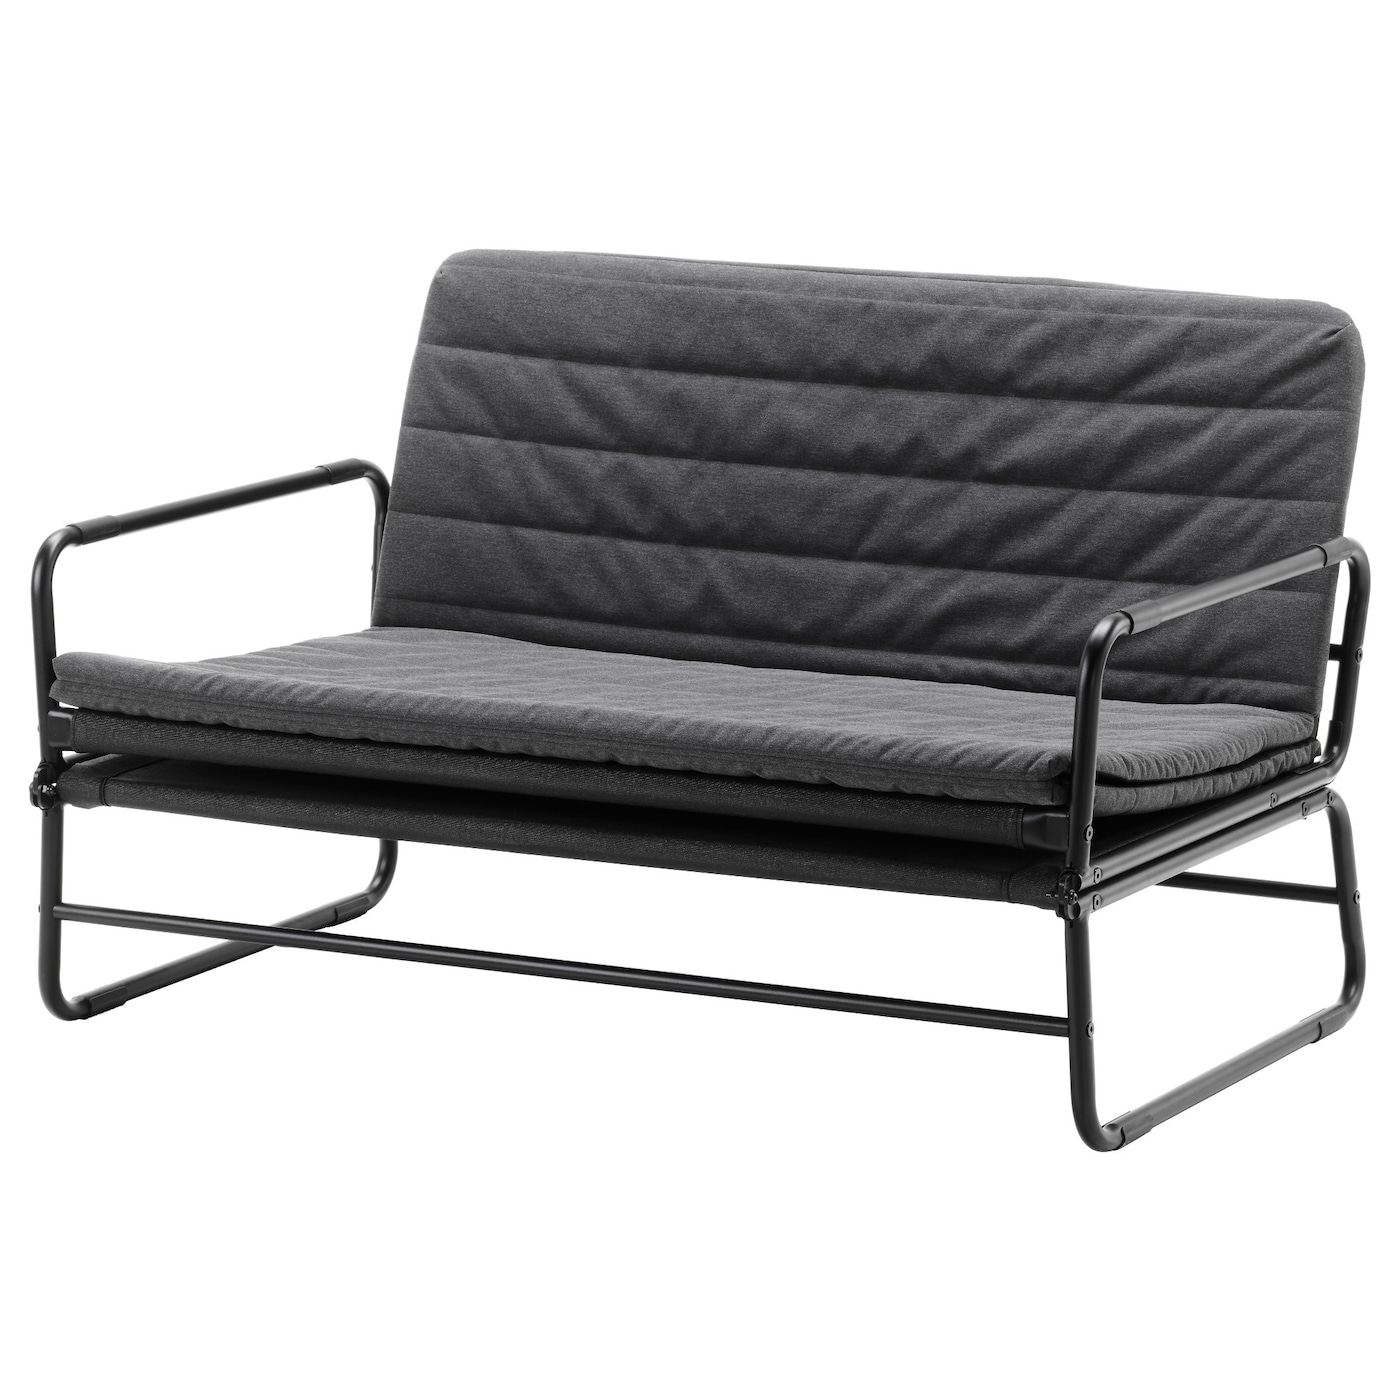 fauteuils canap s convertibles confortable pas cher ikea. Black Bedroom Furniture Sets. Home Design Ideas